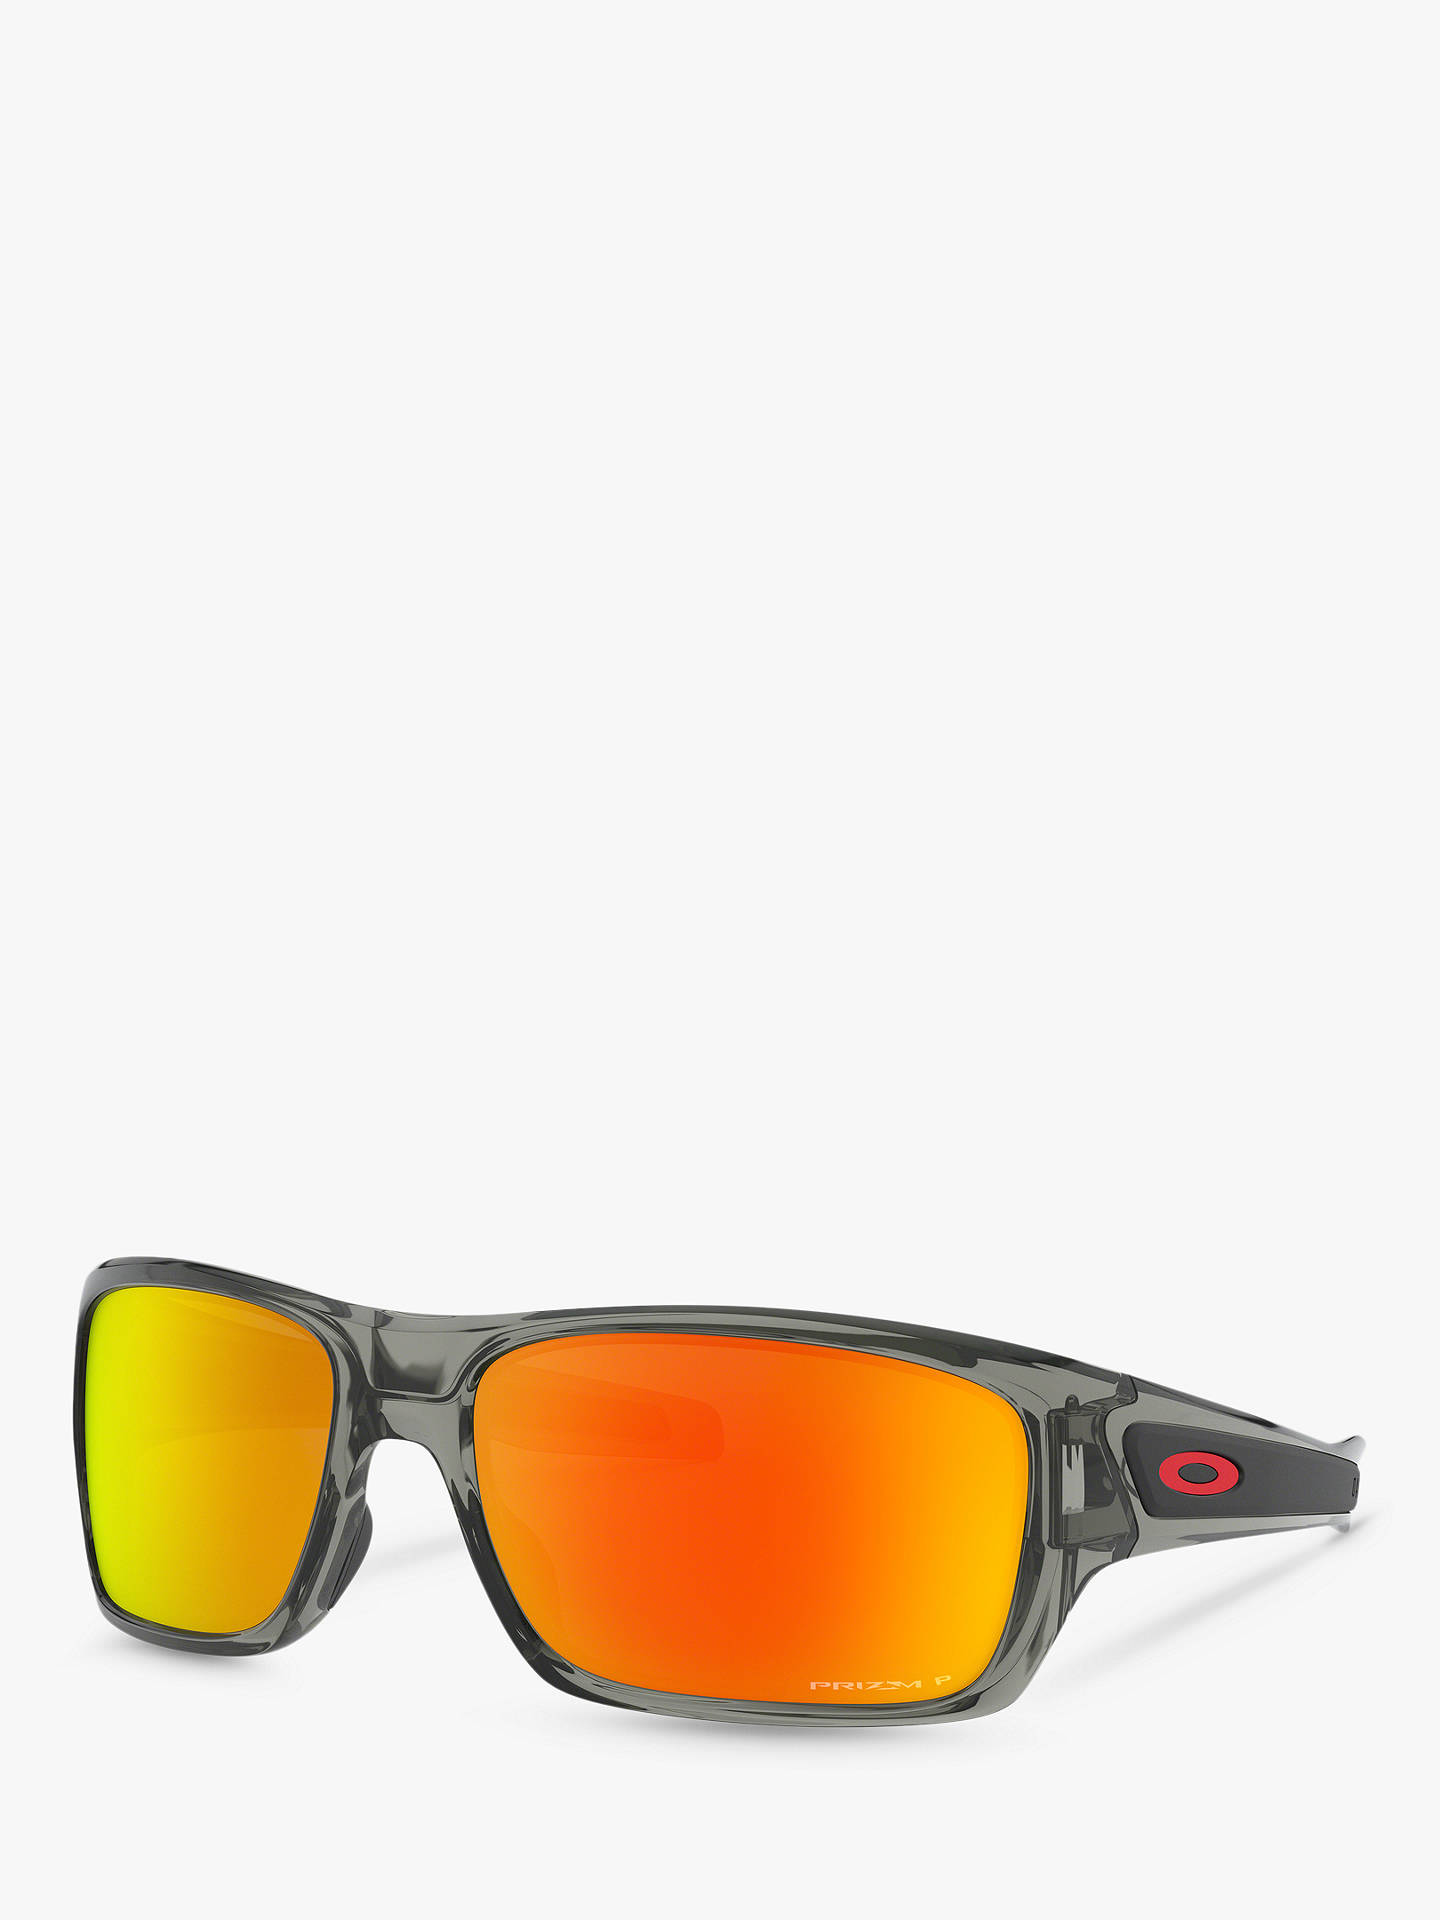 93a7cb456b8 Oakley OO9263 Men s Turbine Prizm Polarised Sunglasses at John Lewis ...